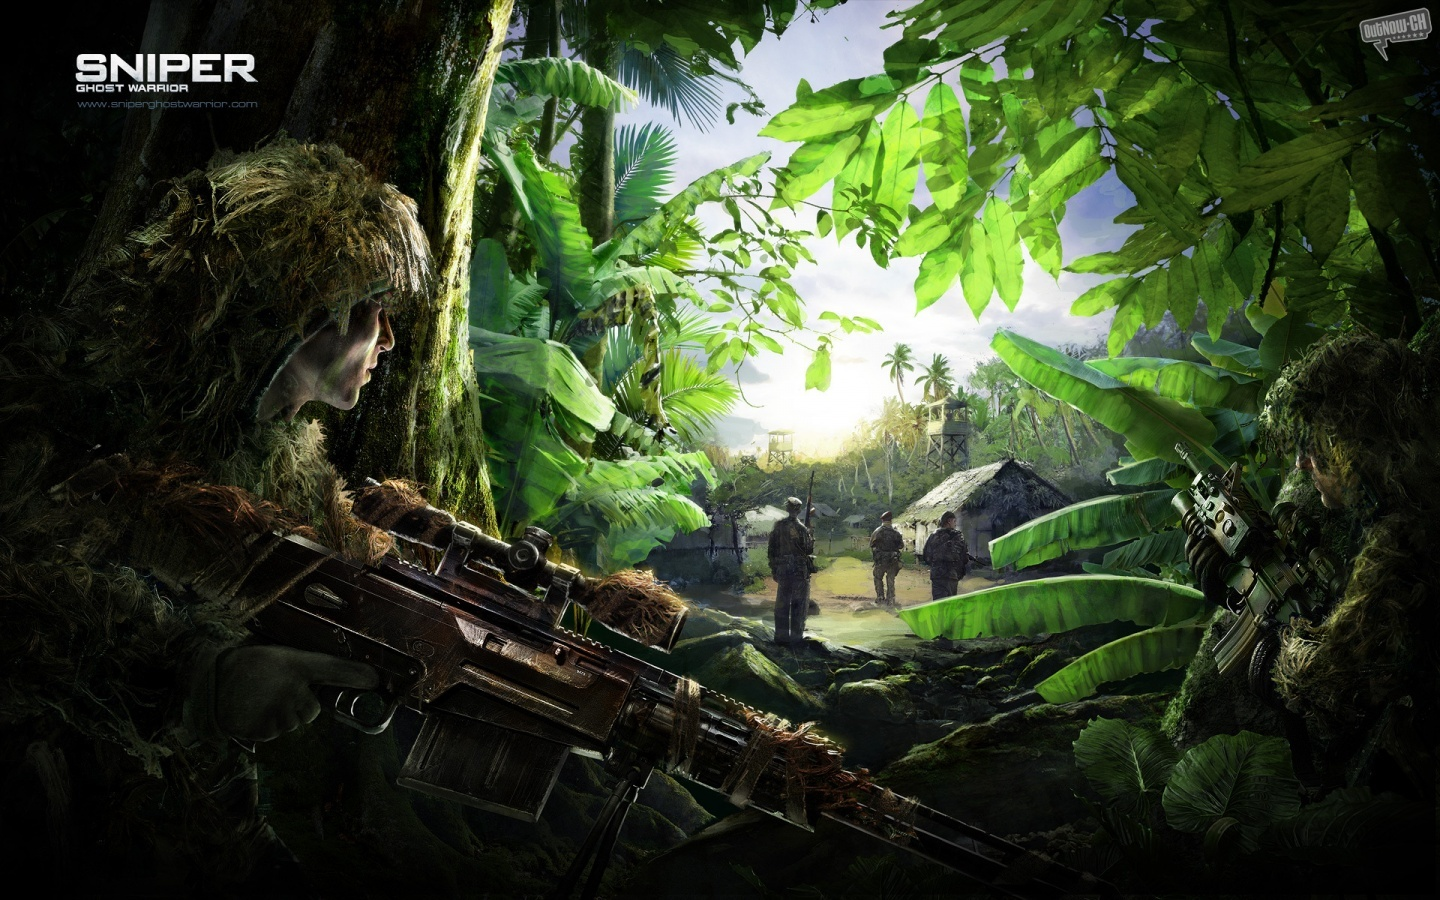 sniper ghost warrior forest HD Wallpaper